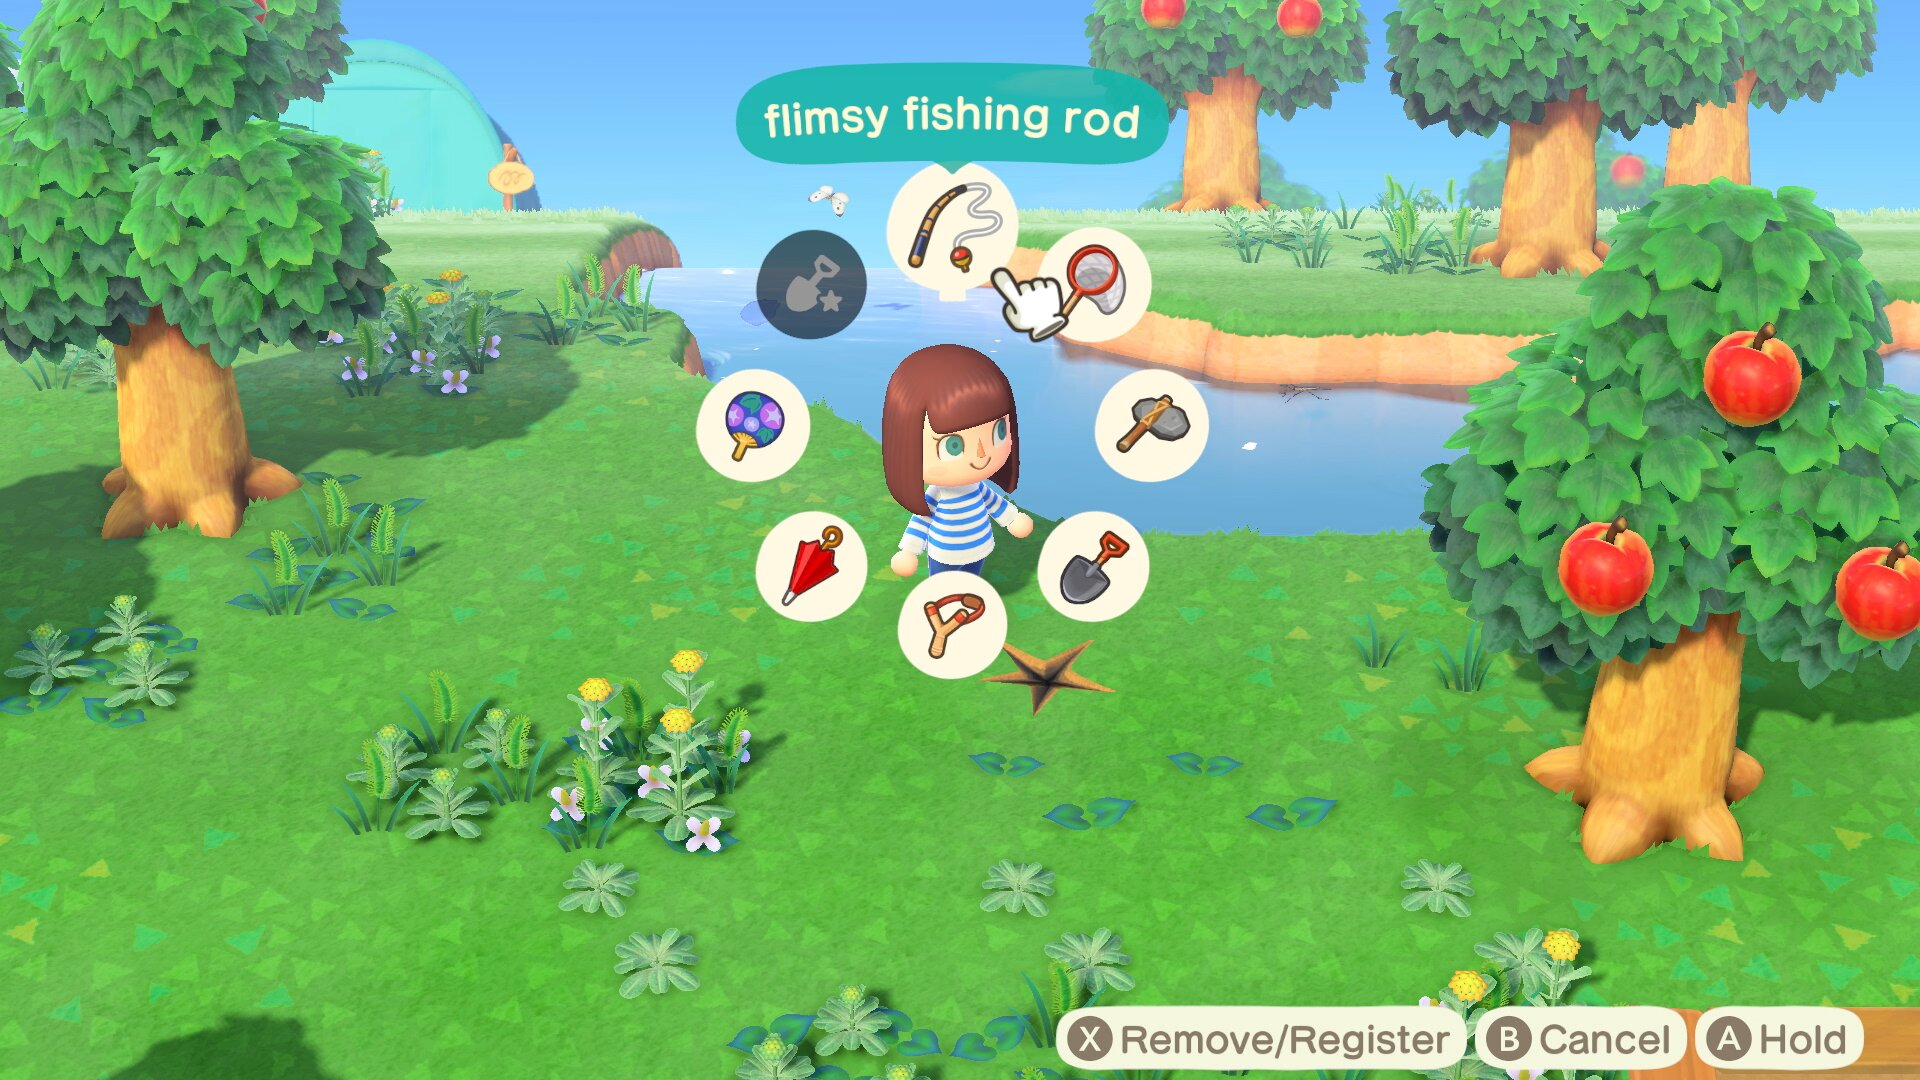 The Tool Ring can be unlocked after a few days in Animal Crossing: New Horizons